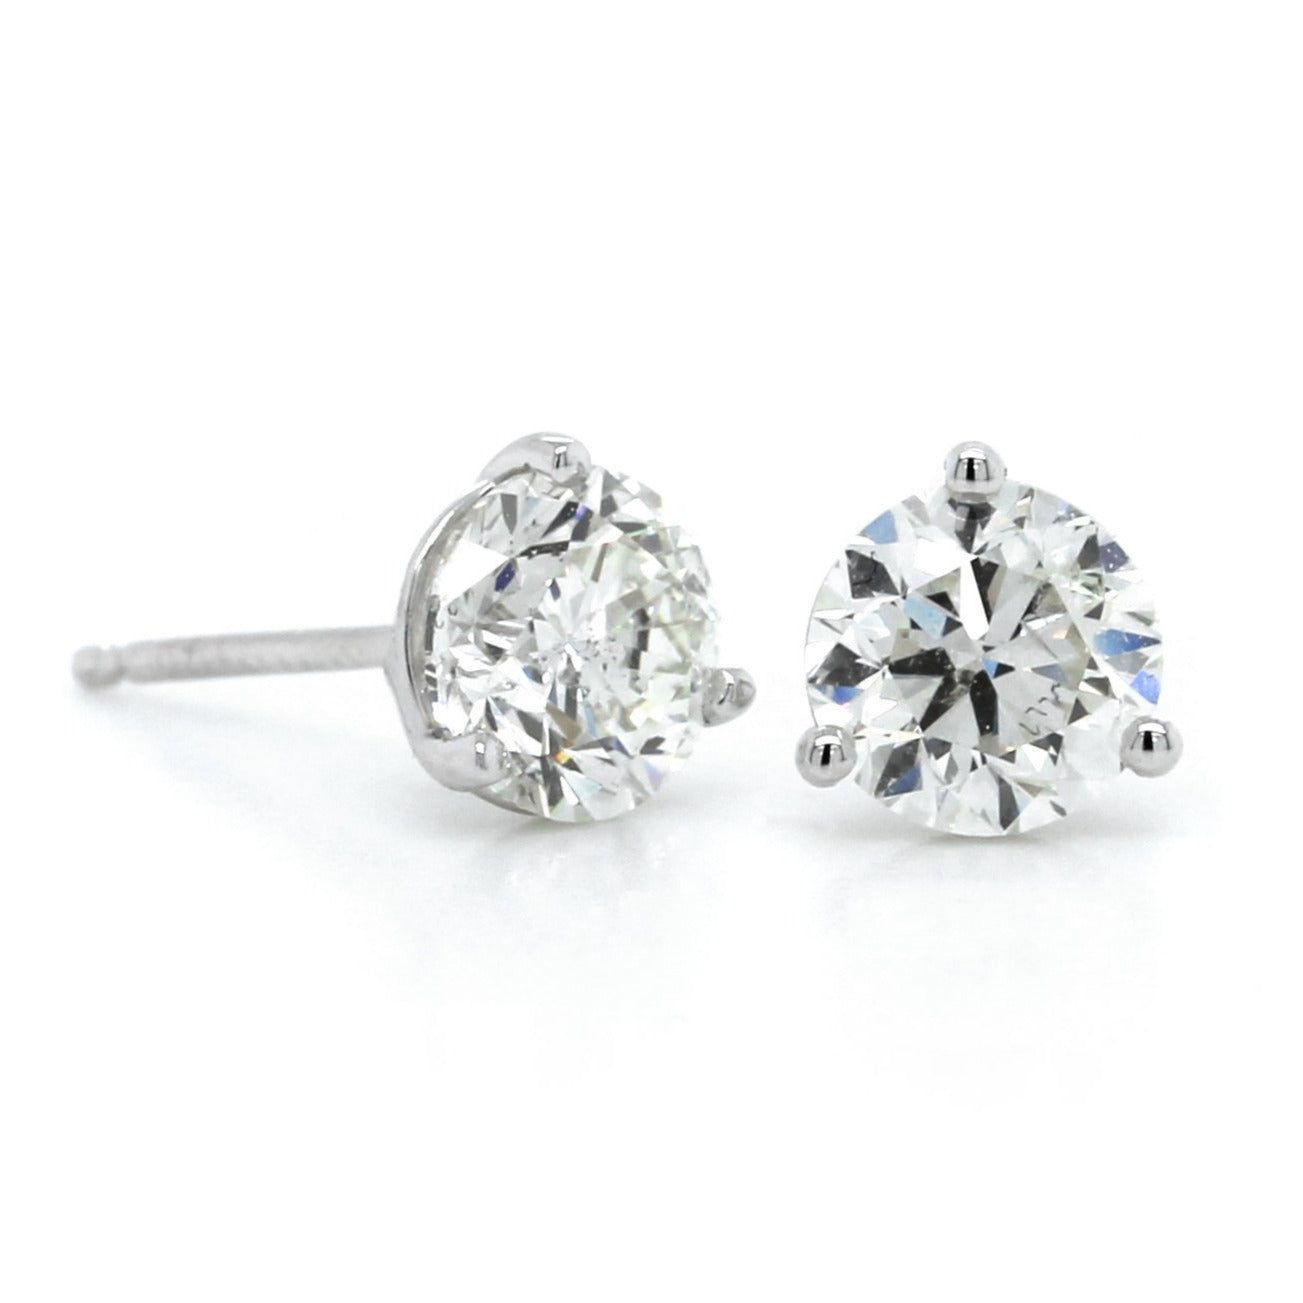 14K White Gold 1.75CTW Diamond Stud Earrings